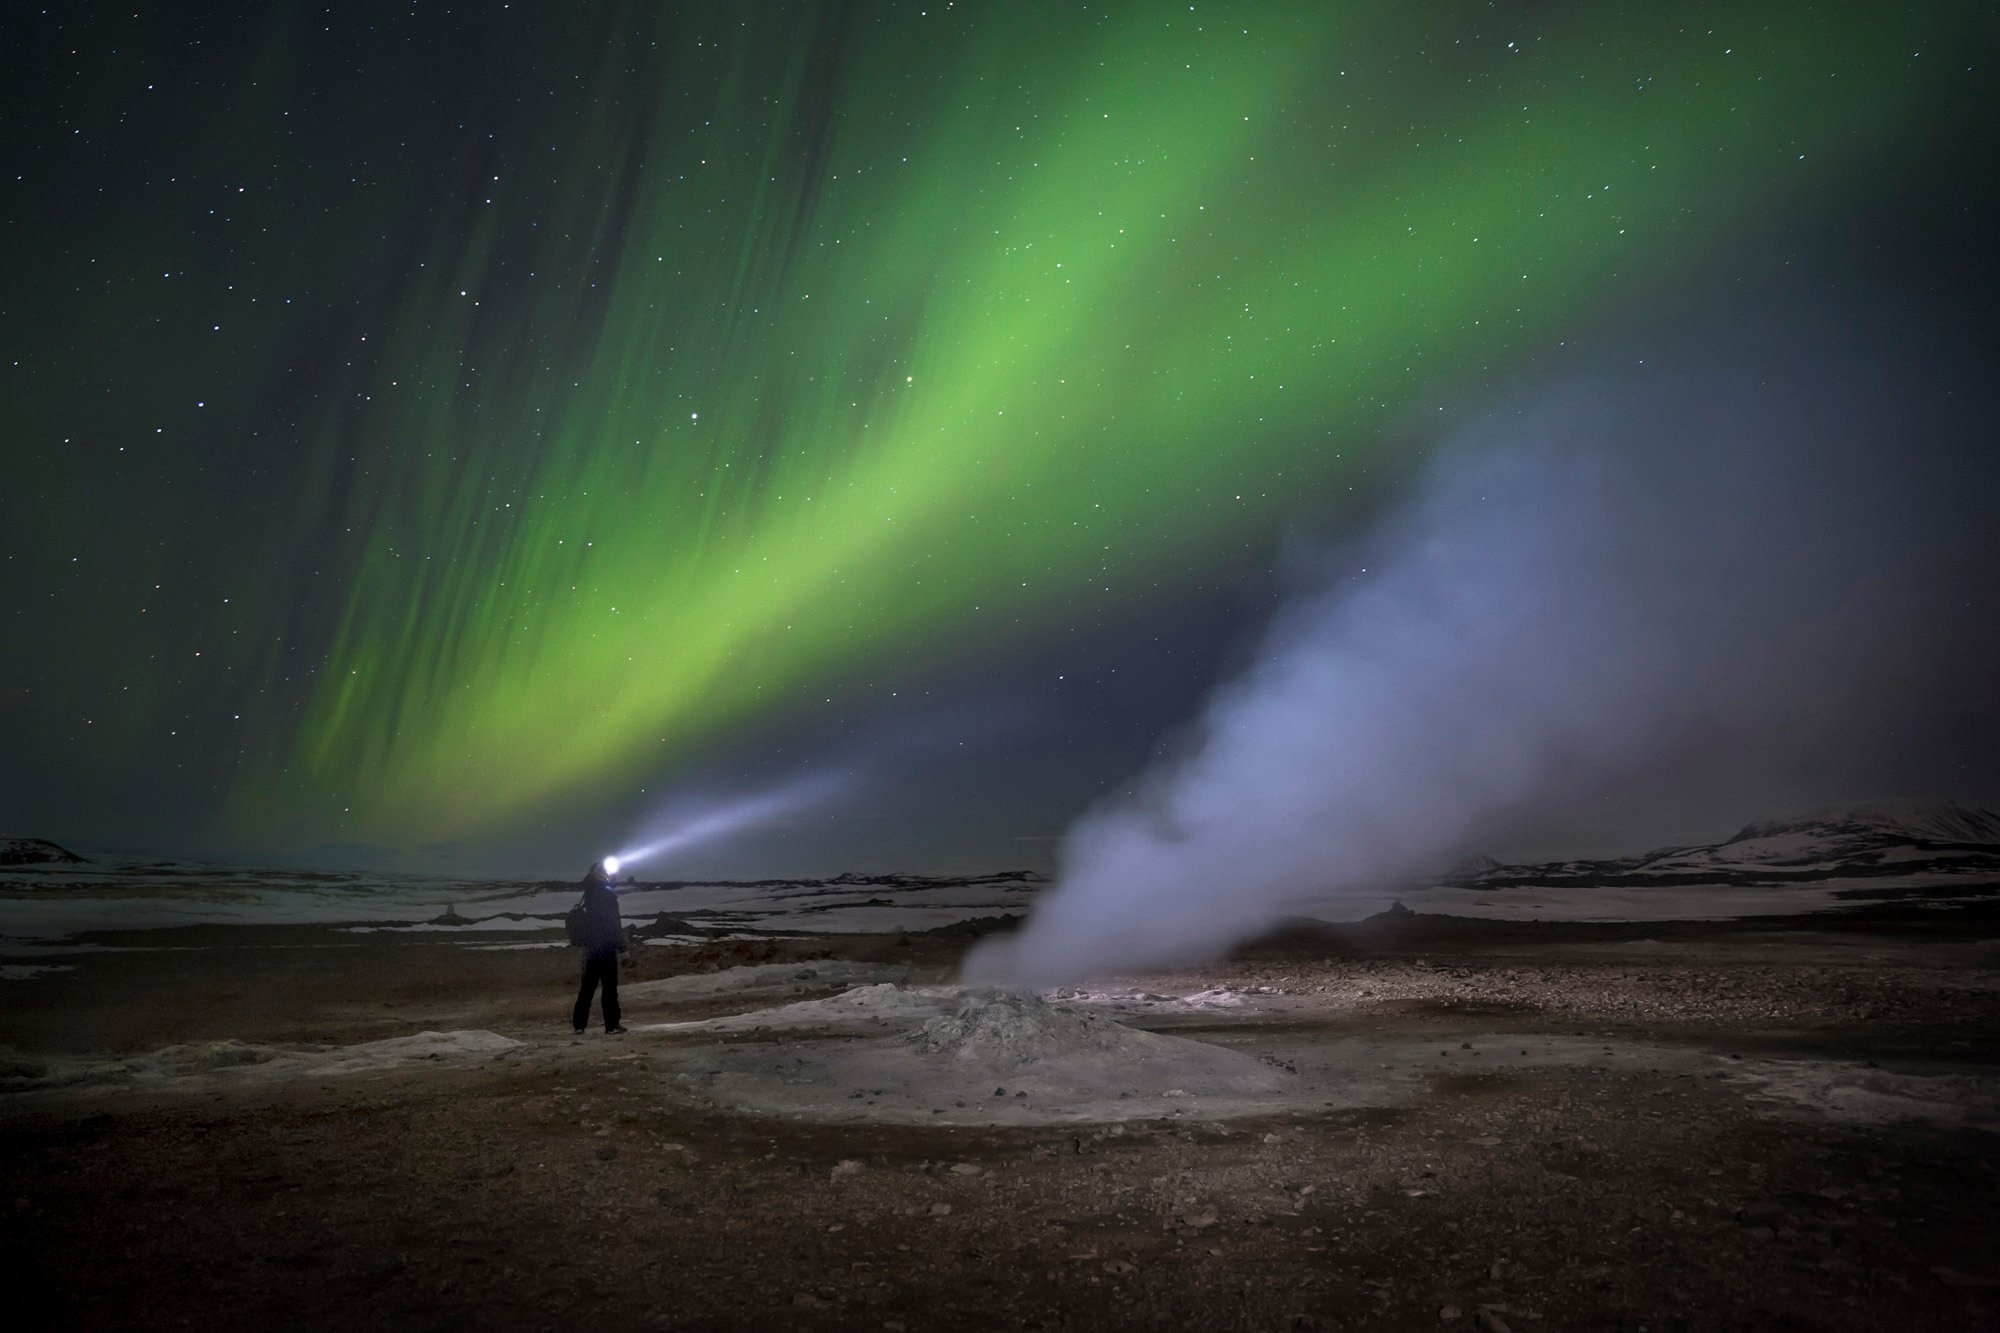 """""""Northern Lights at the reindeer herders' camp. Accustomed to them, one local person looked at my shot with curiosity, probably trying to understand why it interested me"""" Image: Vladimir Alekseev/www.tpoty.com"""